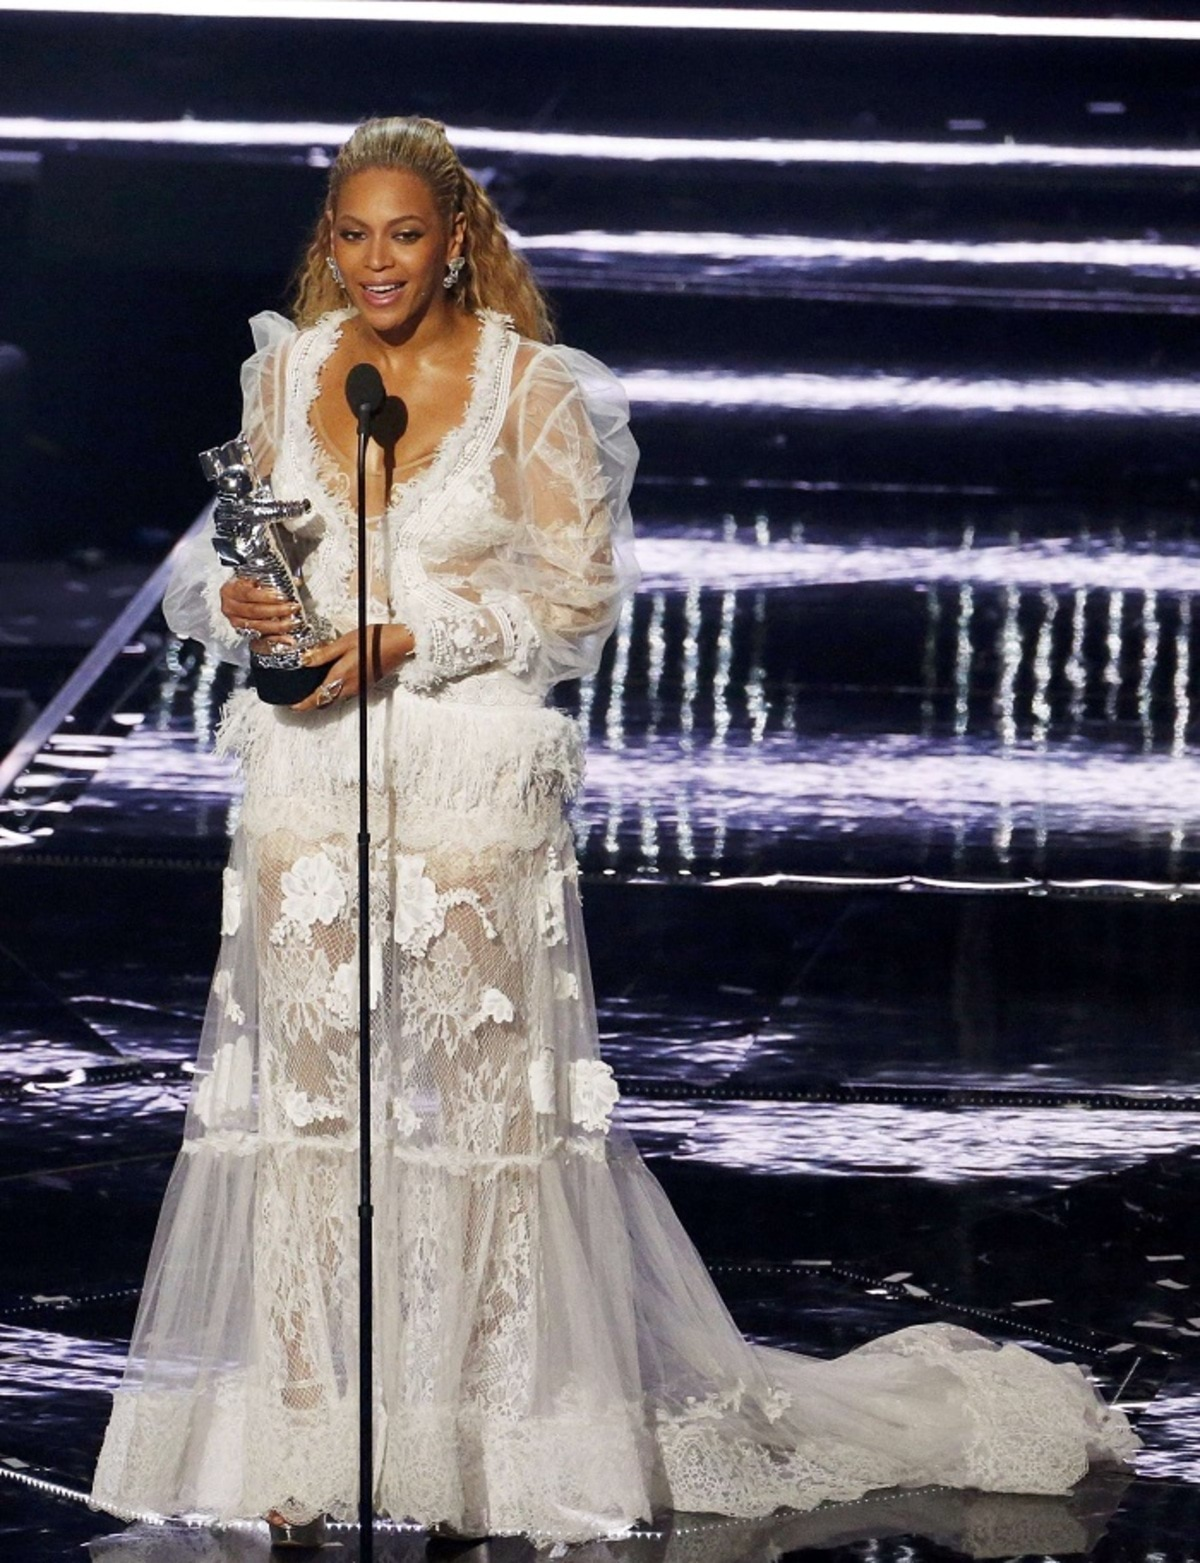 Beyonce accepts her award during the 2016 MTV Video Music Awards in New York